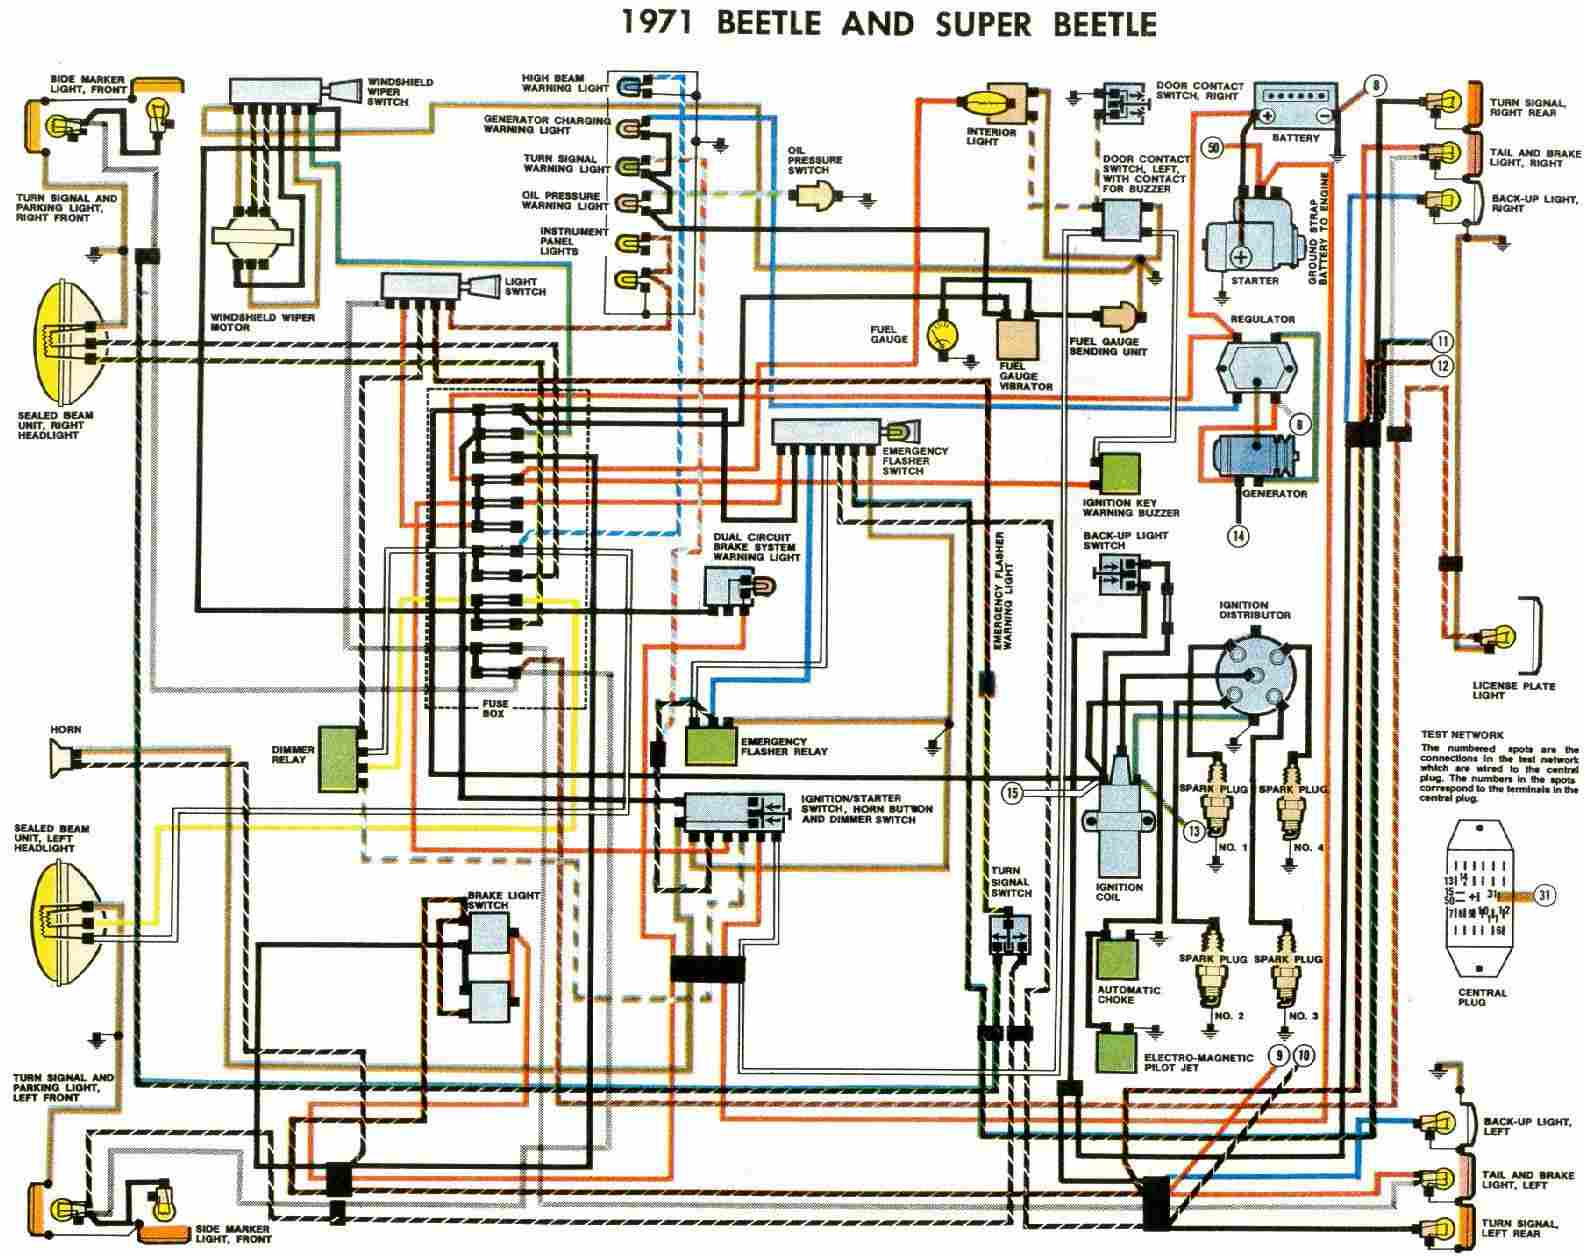 2007 Vw Beetle Wiring Diagram Another Blog About Toyota 4runner Power Mirror Switch 93 Pickup Tail Light Get Free